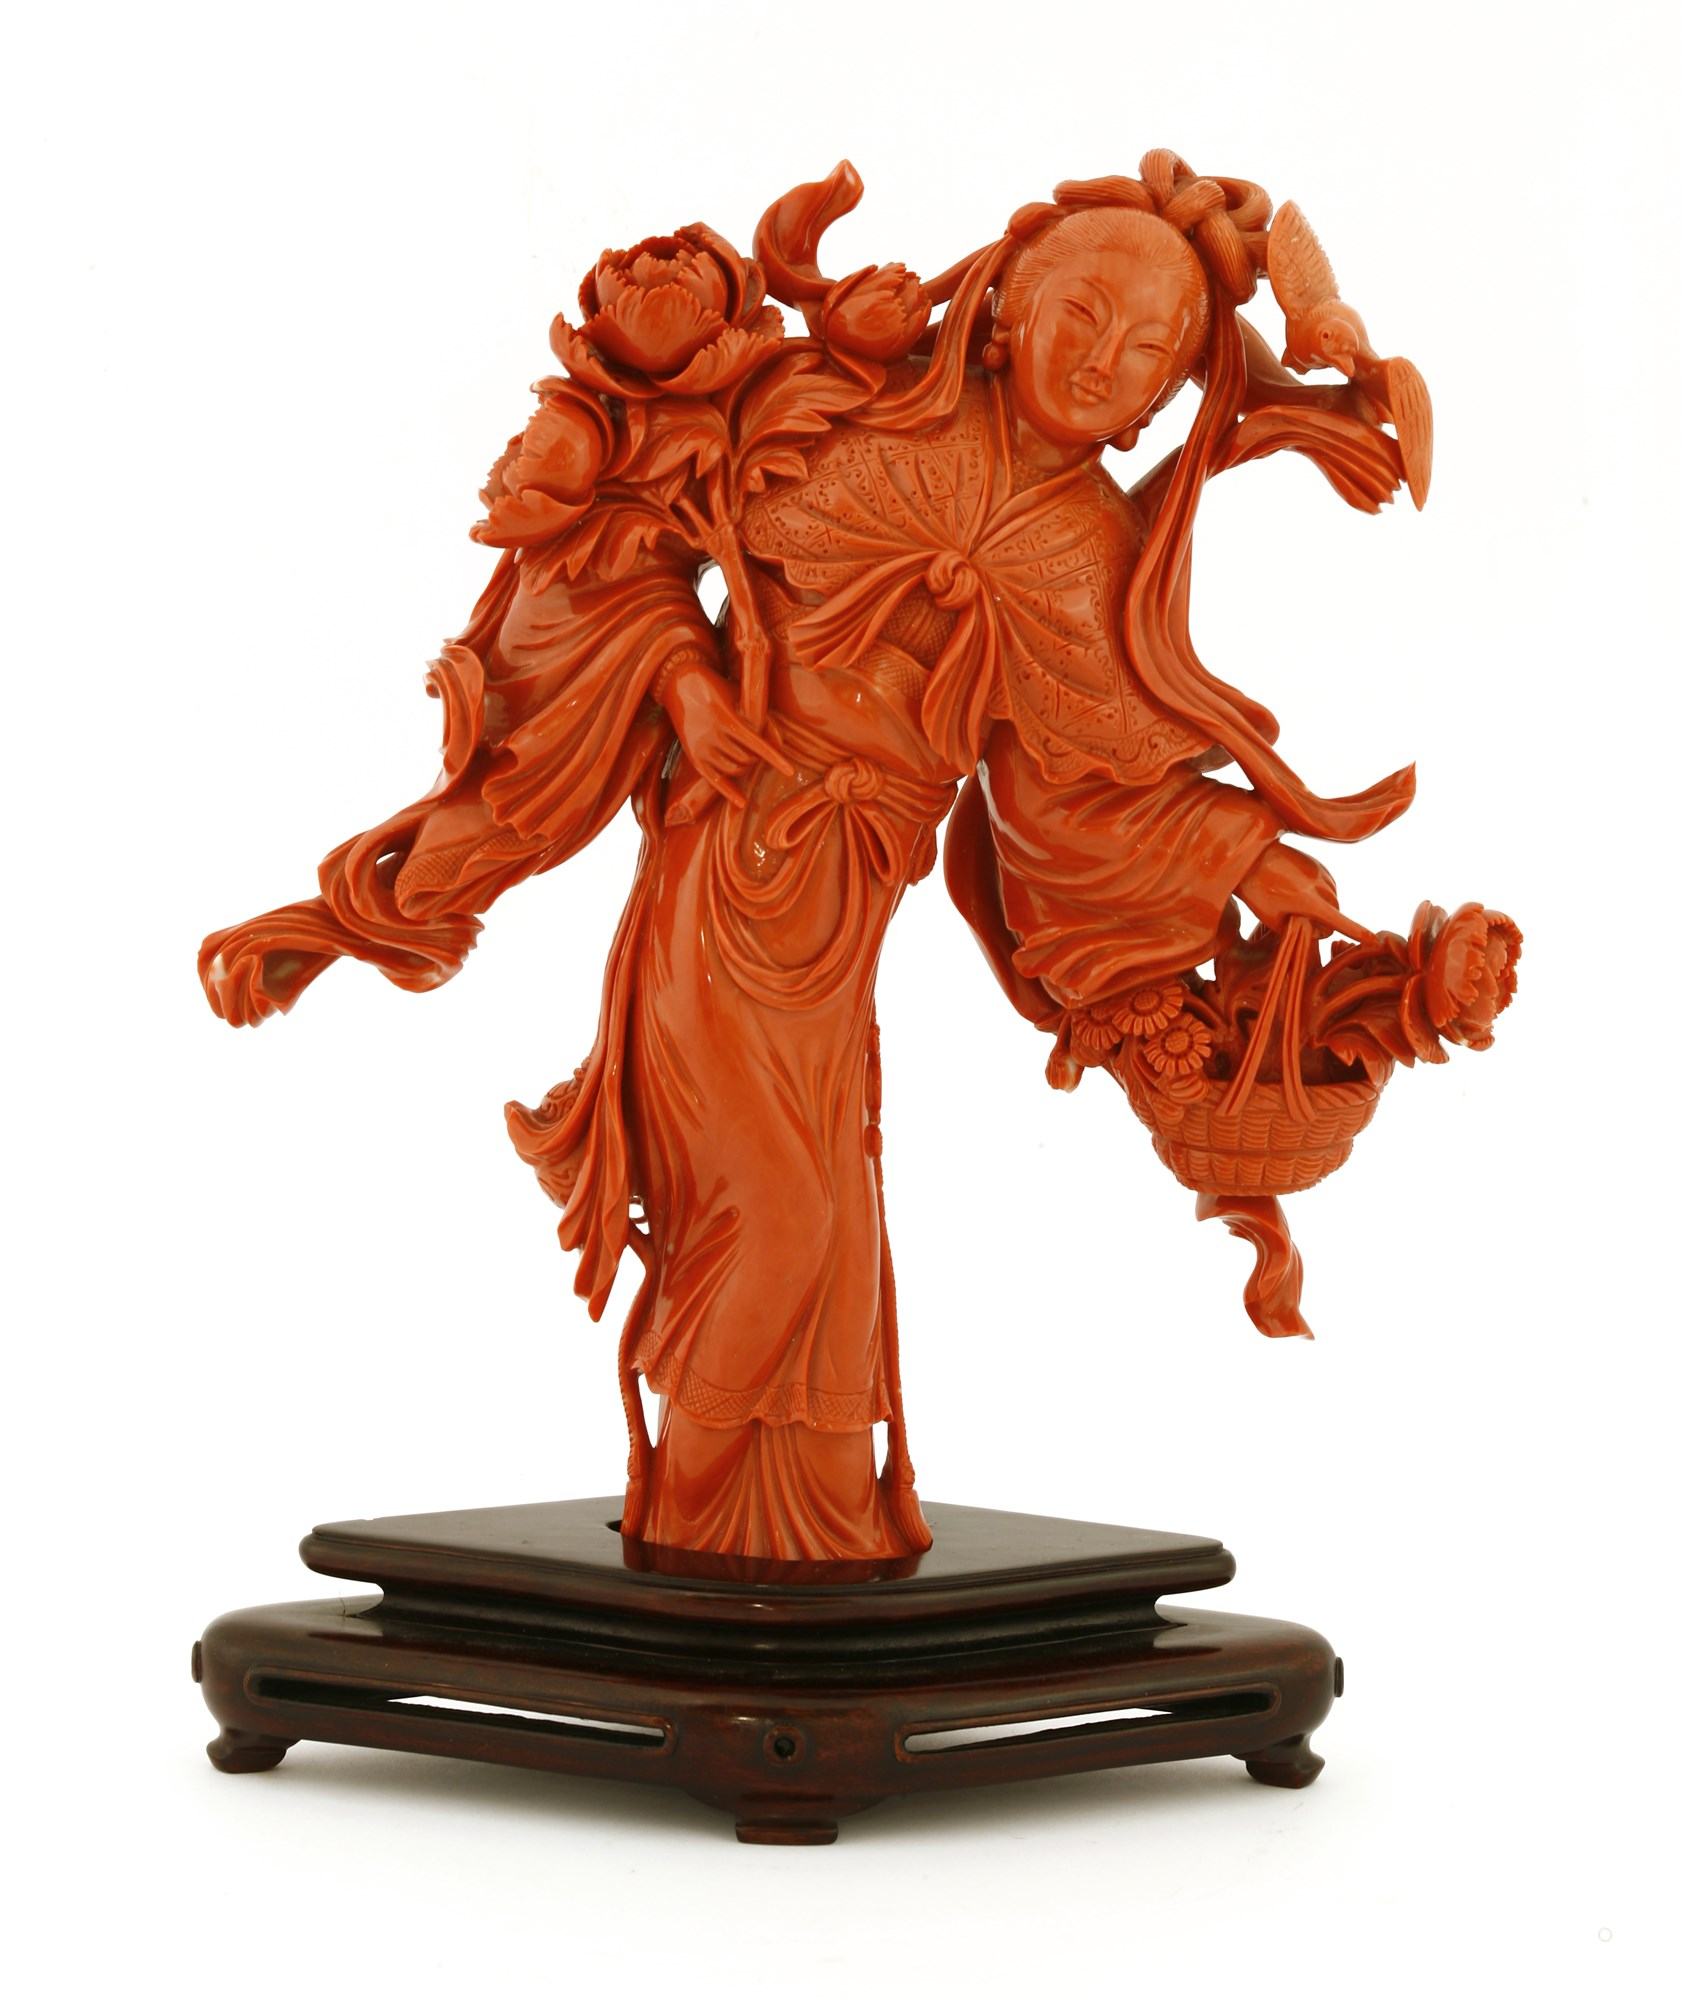 A 20th century coral figure of a lady holding a basket of flowers